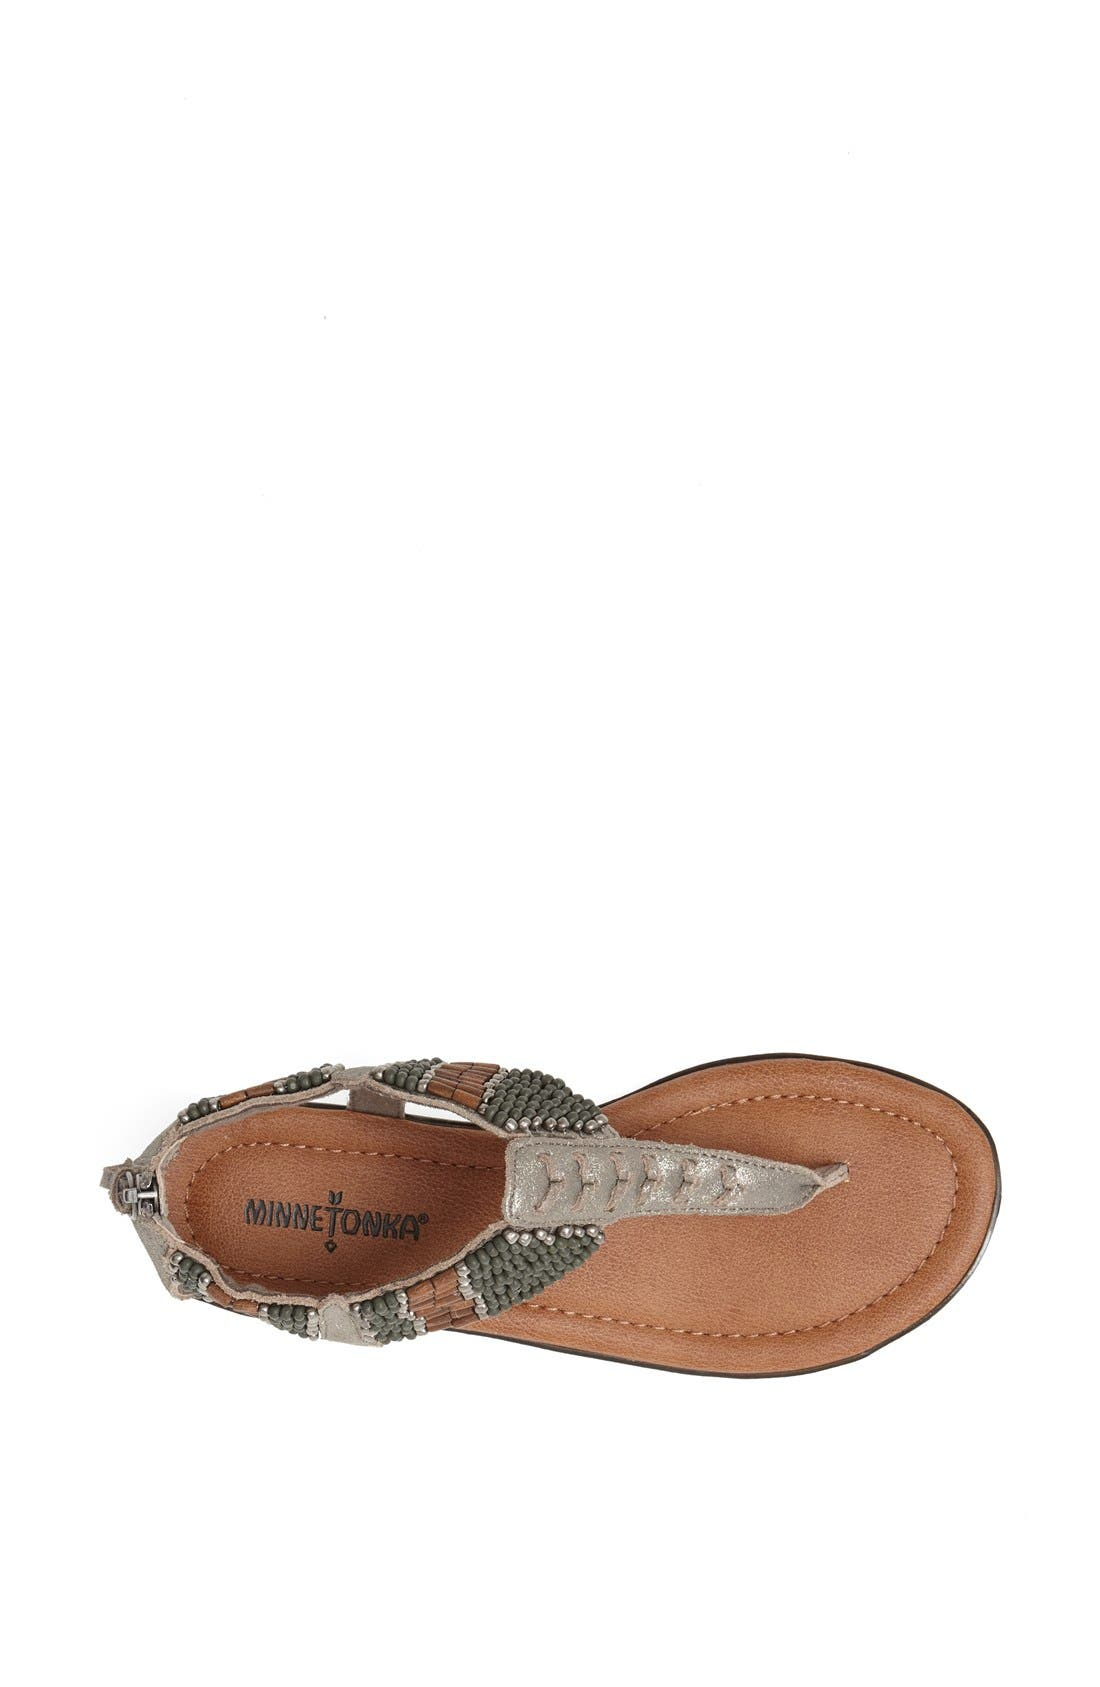 Alternate Image 3  - Minnetonka 'Ibiza' Sandal